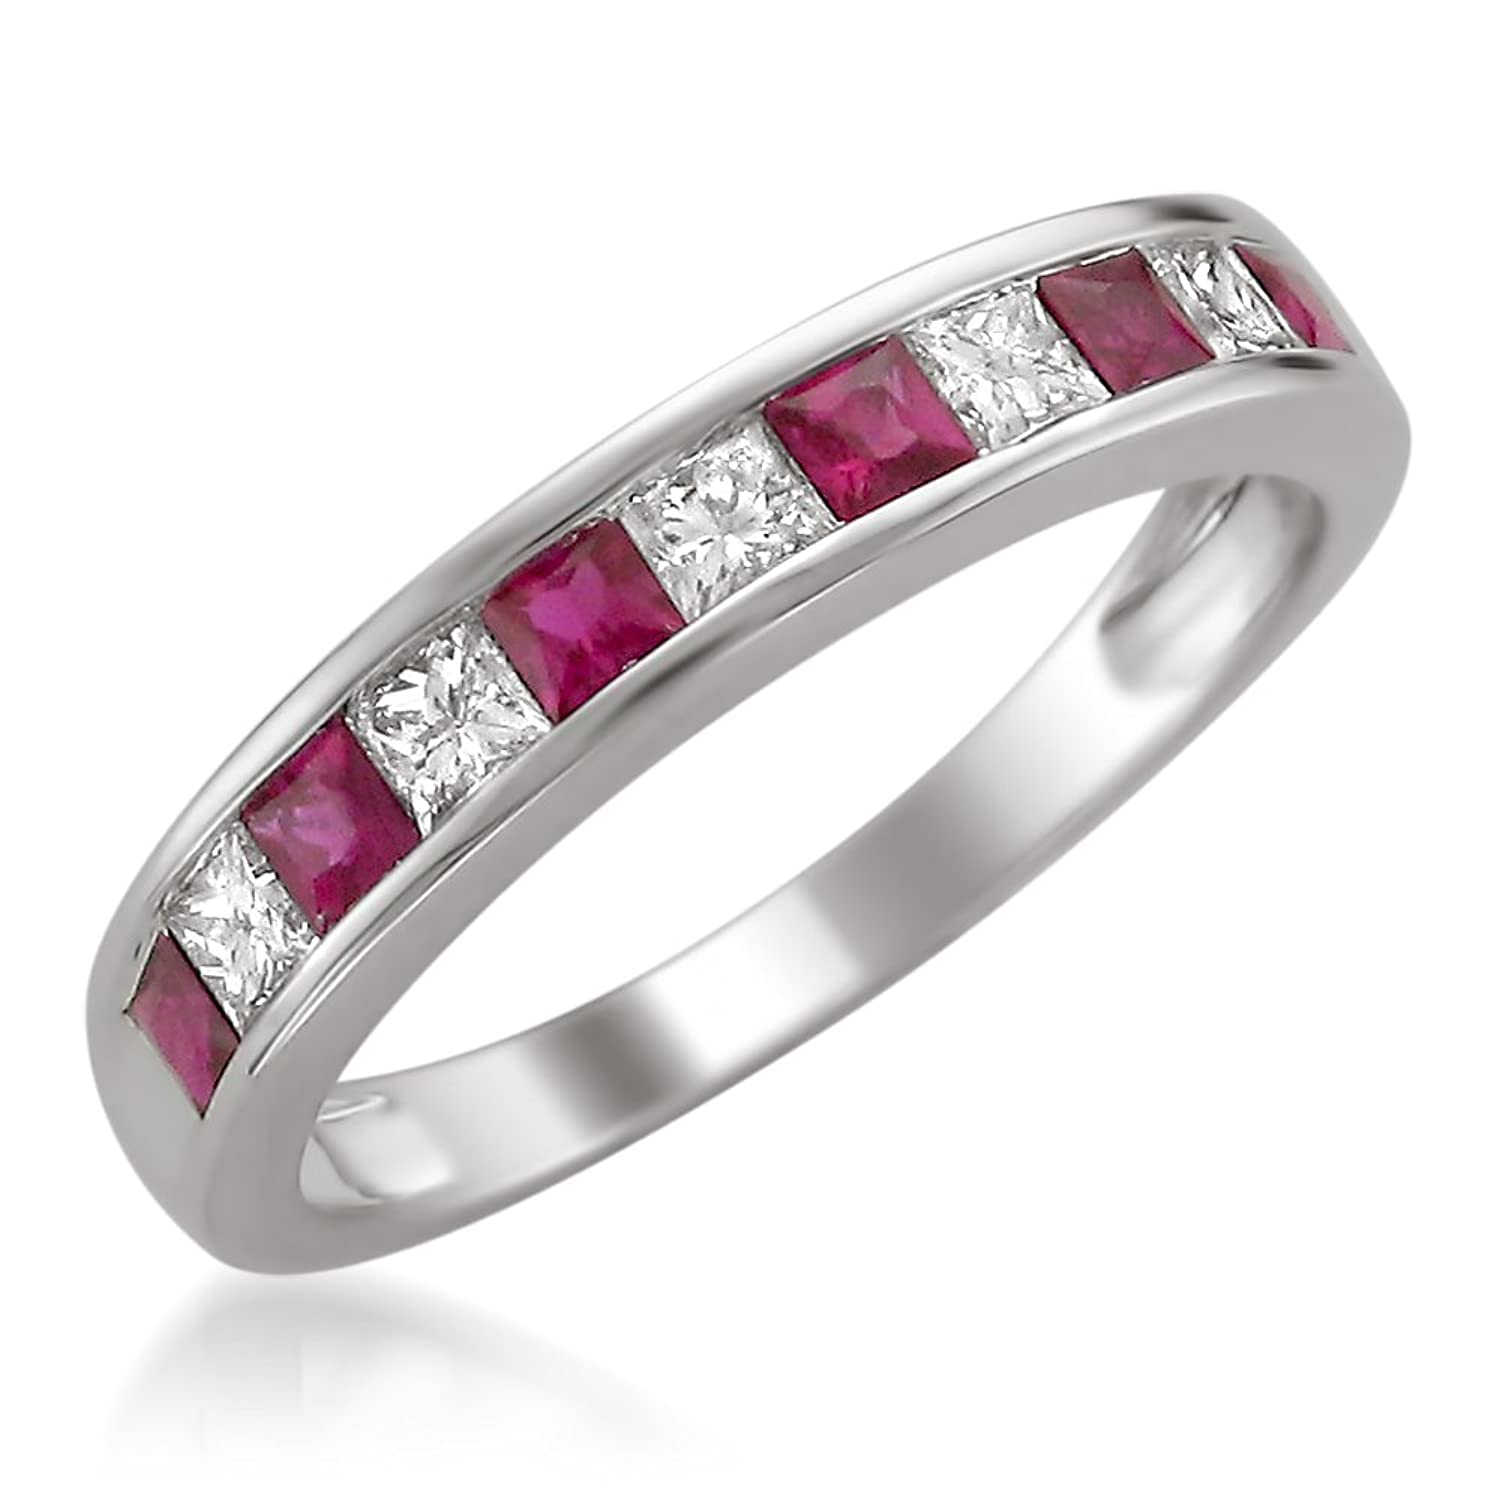 14k White Gold Princess cut Diamond and Red Ruby Wedding Band Ring